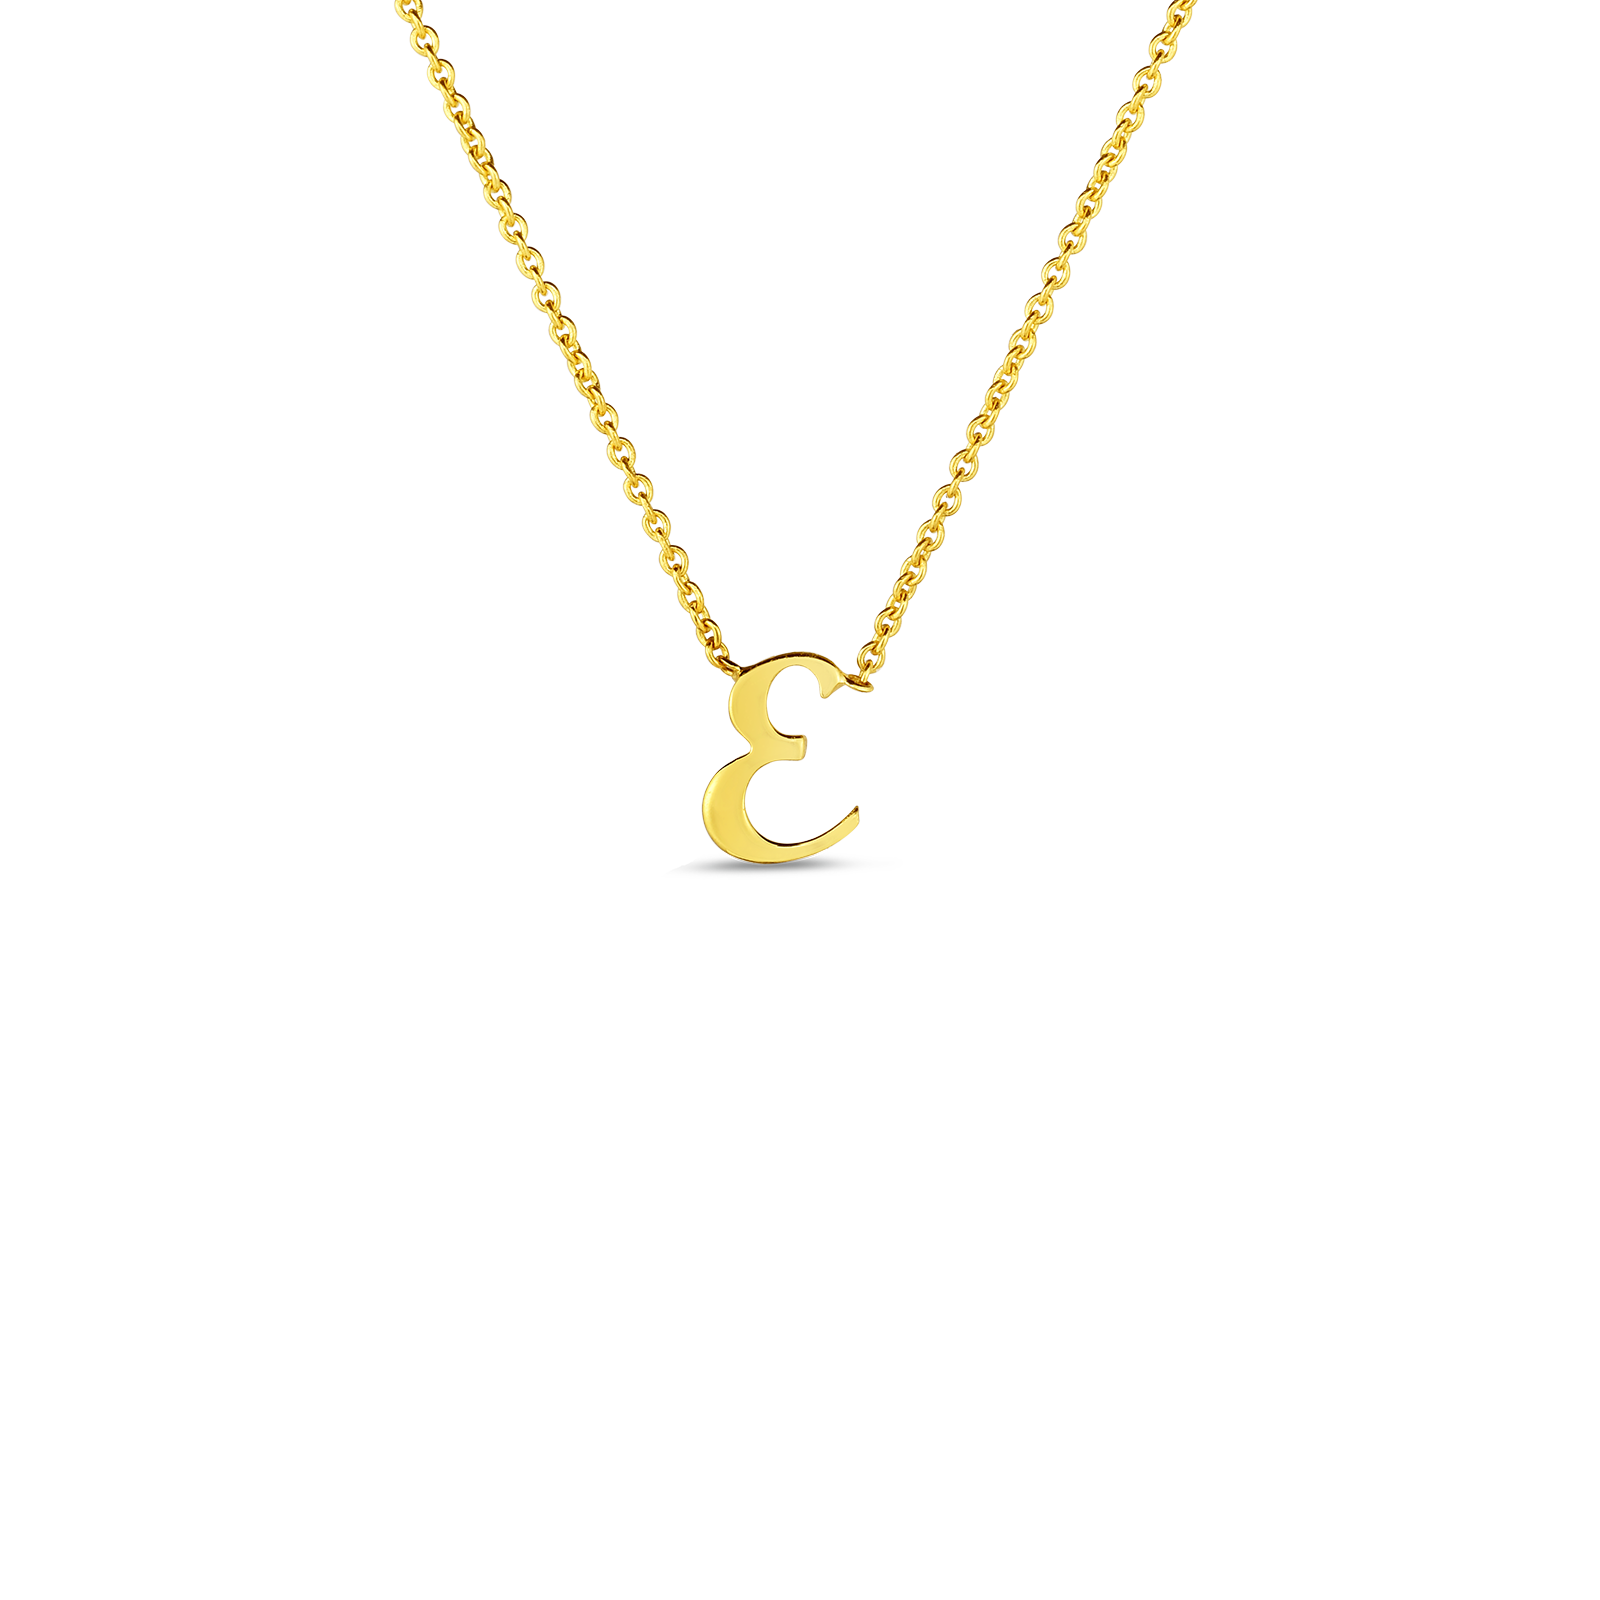 18k Small Script Initial 'E' Pendant On Chain